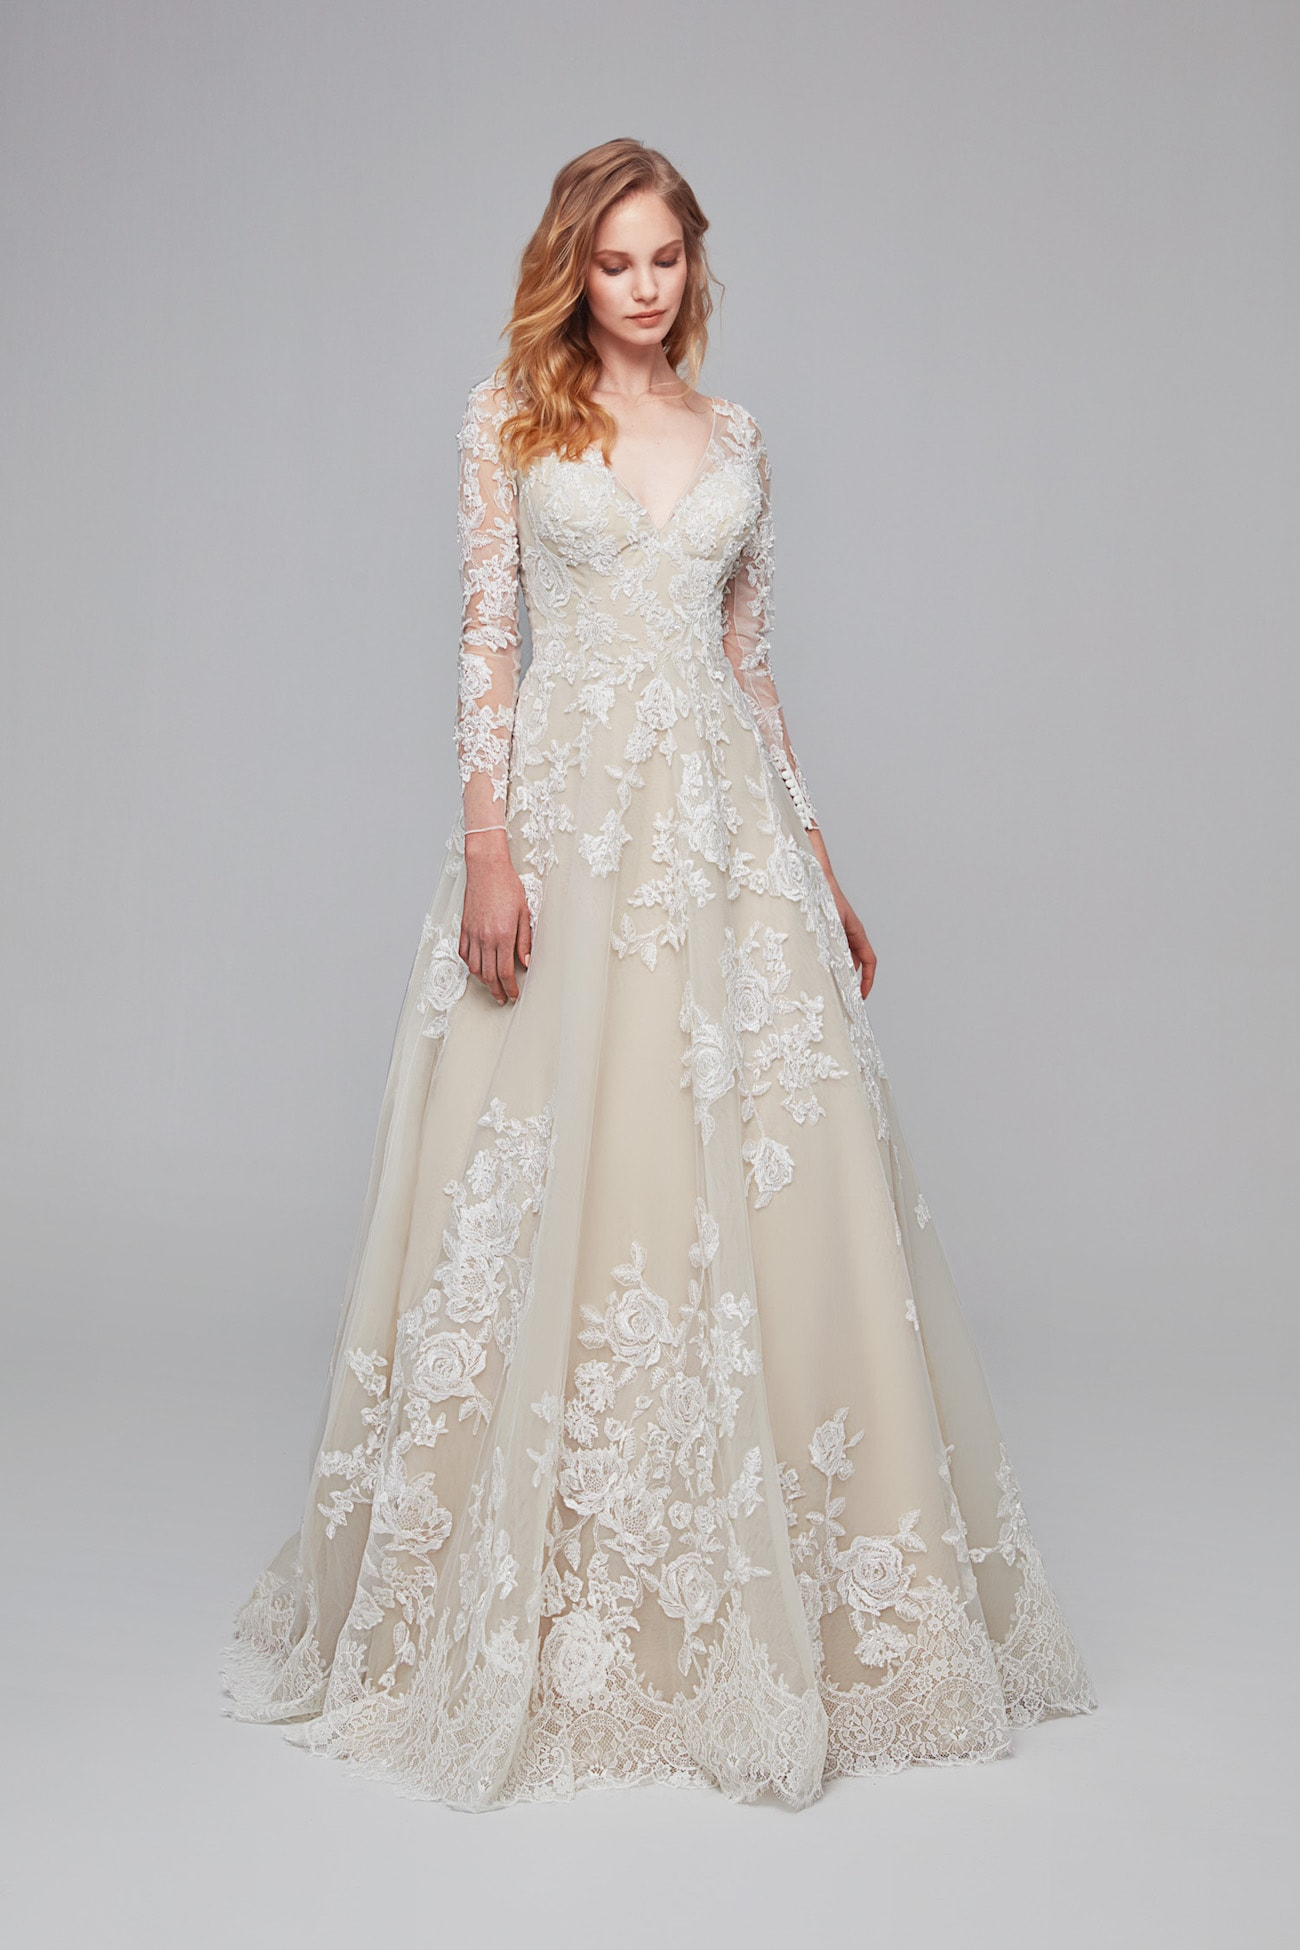 Bride&co Oleg Cassini 2018 Collection on SouthBound Bride